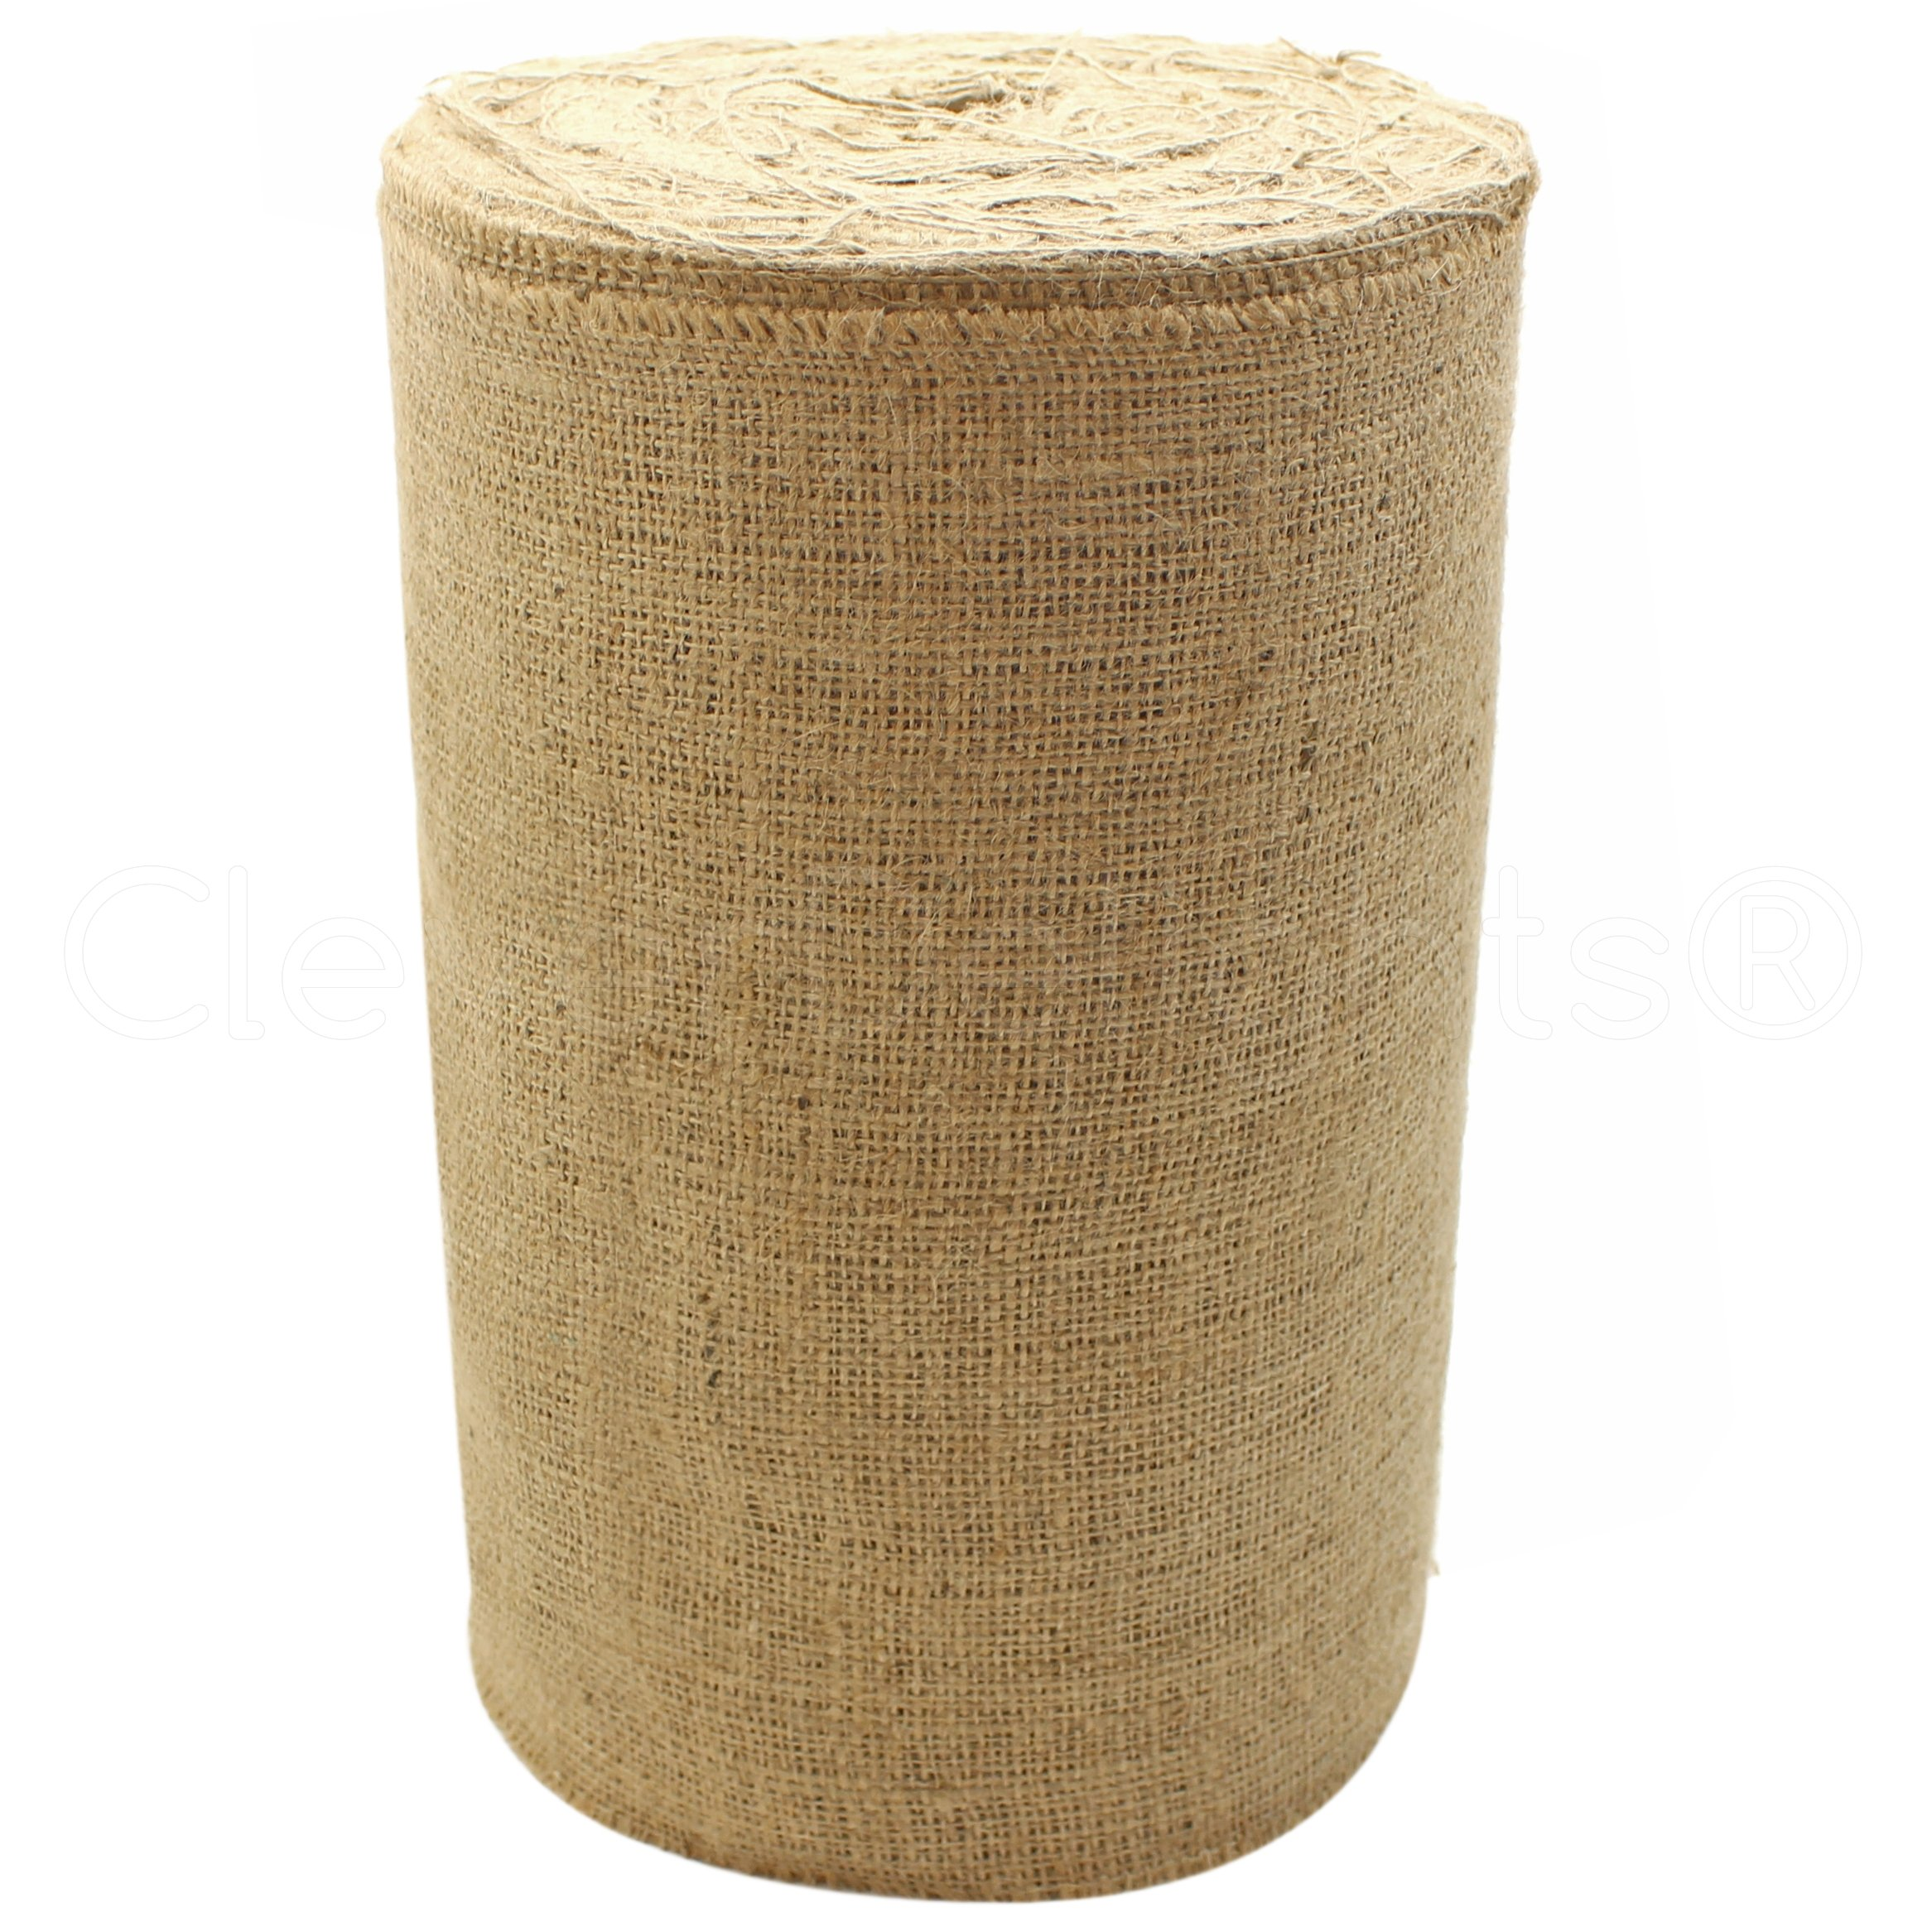 CleverDelights 12'' Natural Burlap - Industrial Grade - 50 Yard Roll - Tight-Weave Jute Burlap Fabric by CleverDelights (Image #1)